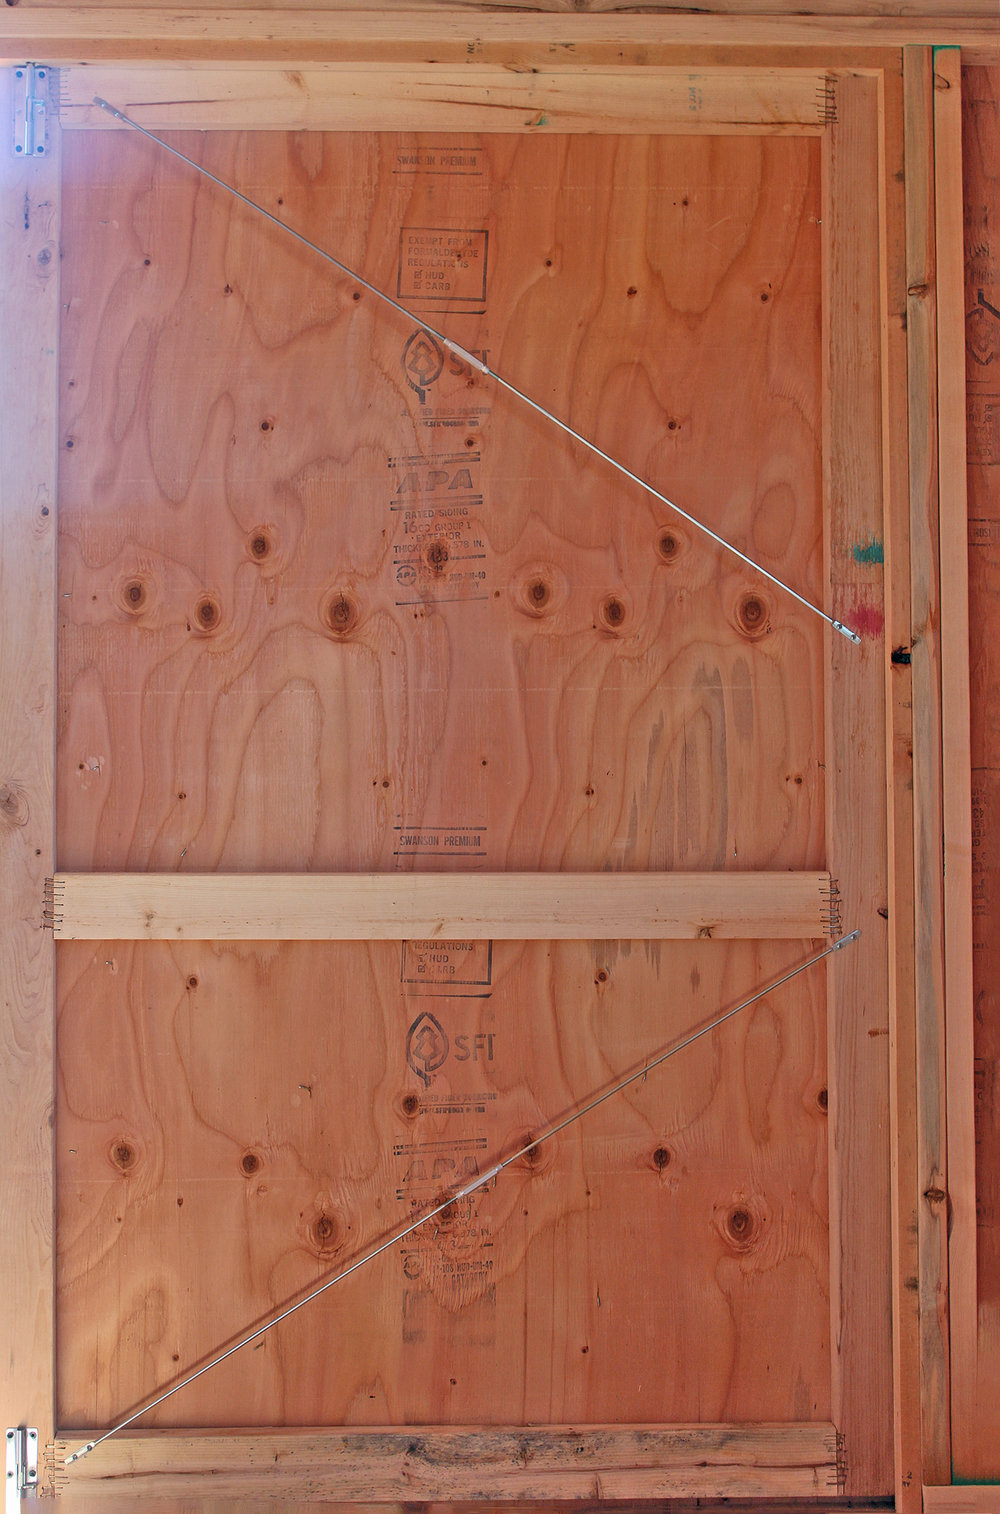 Door Hardware - Shed Supply and Hardware & Screen and Barn Door Brace u2014 Shed Supply